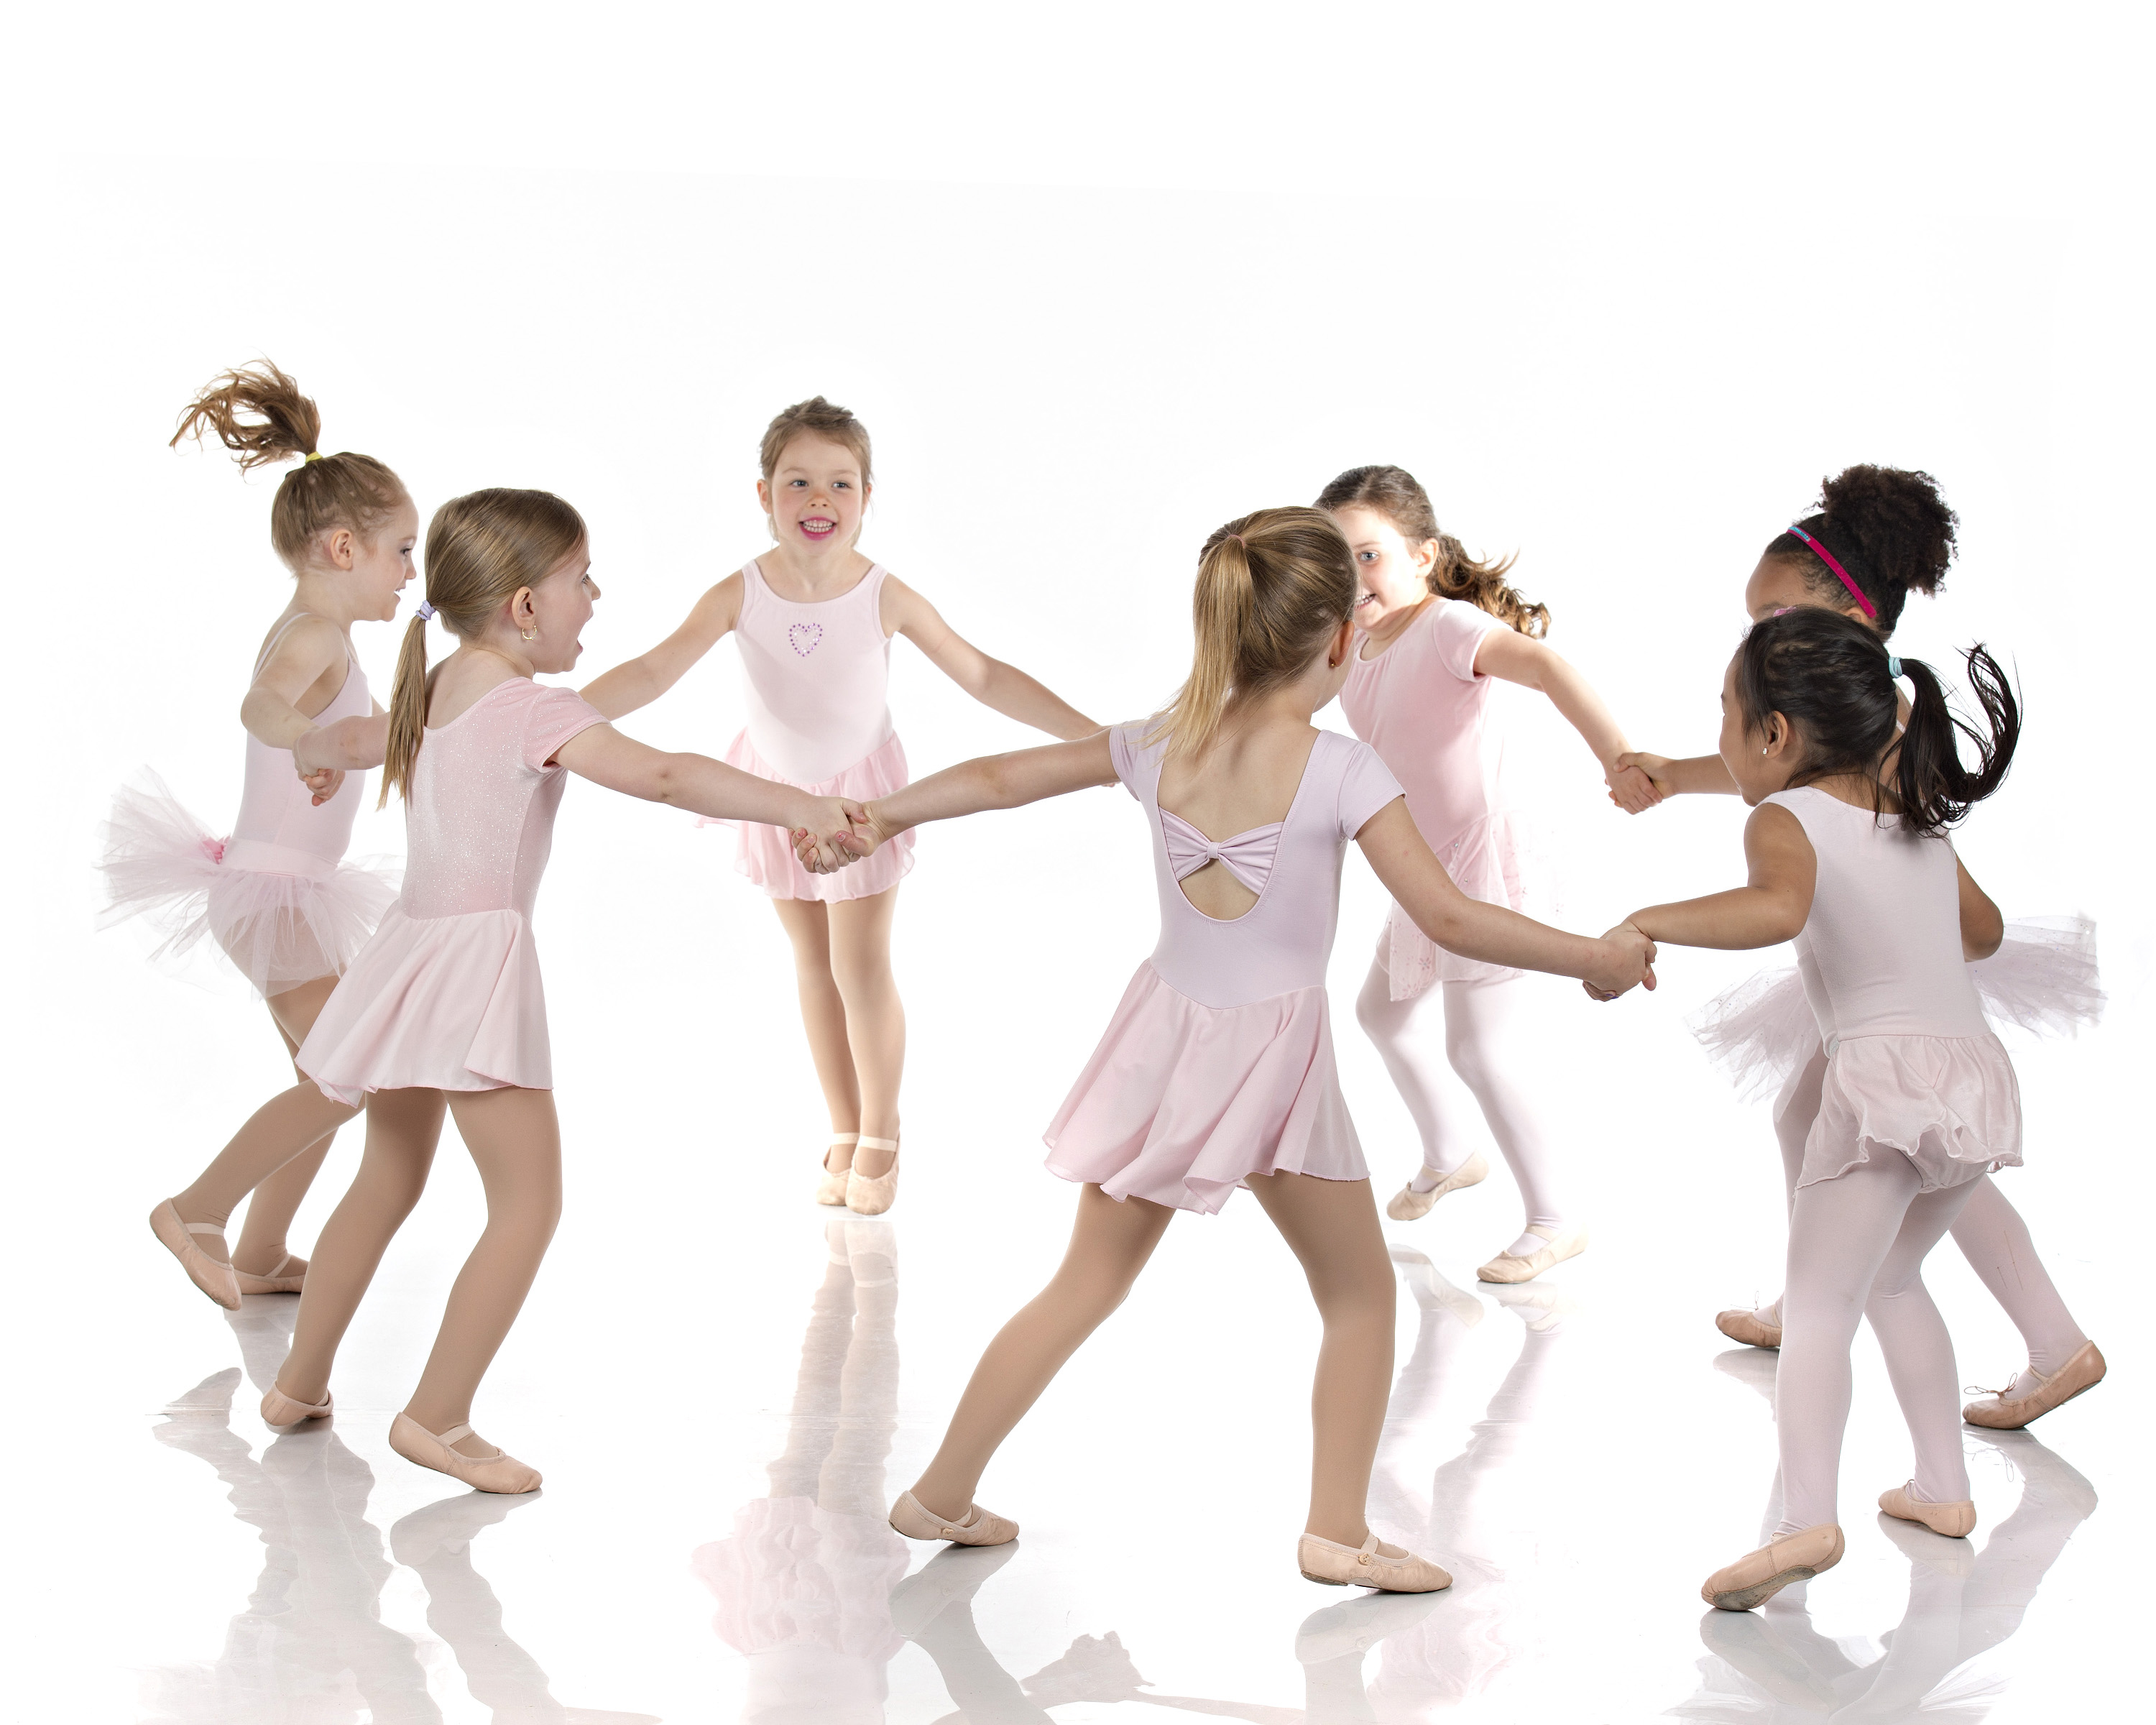 DDA Dance Academy | Dance Studios in 40 Eisenhower Drive - Paramus NJ - Reviews - Photos - Phone Number